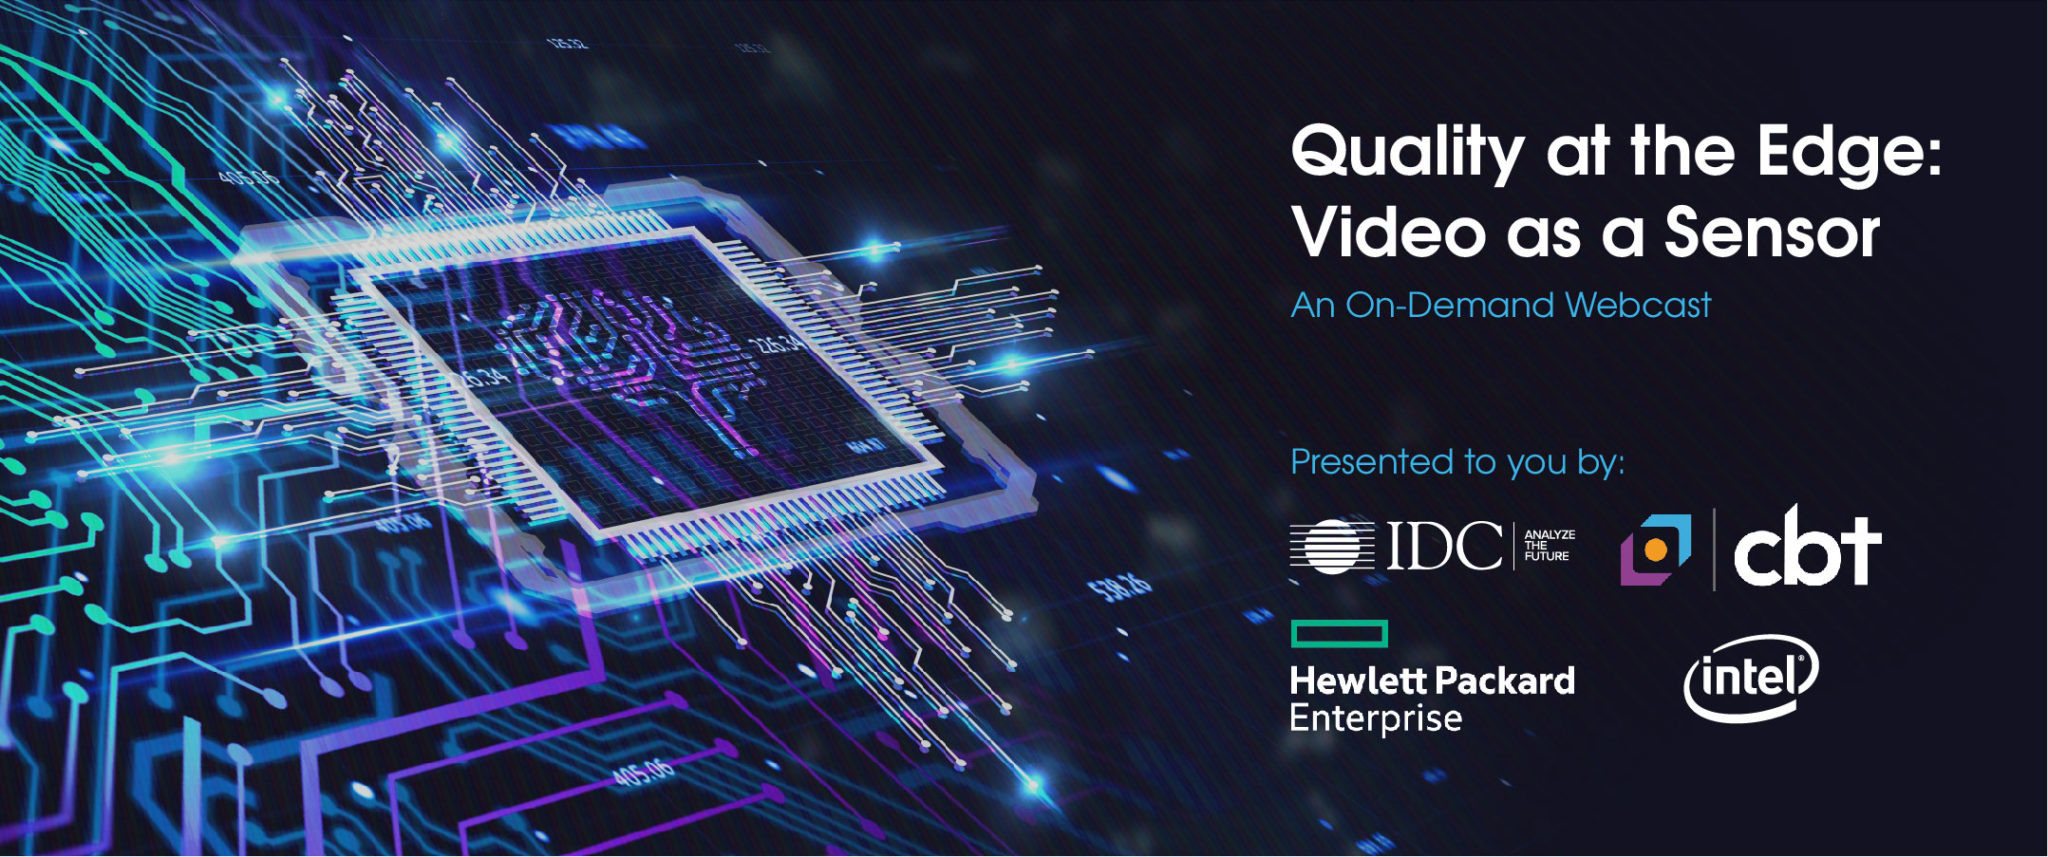 Video as a Sensor Webcast, HPE, Intel, IDC, Edge